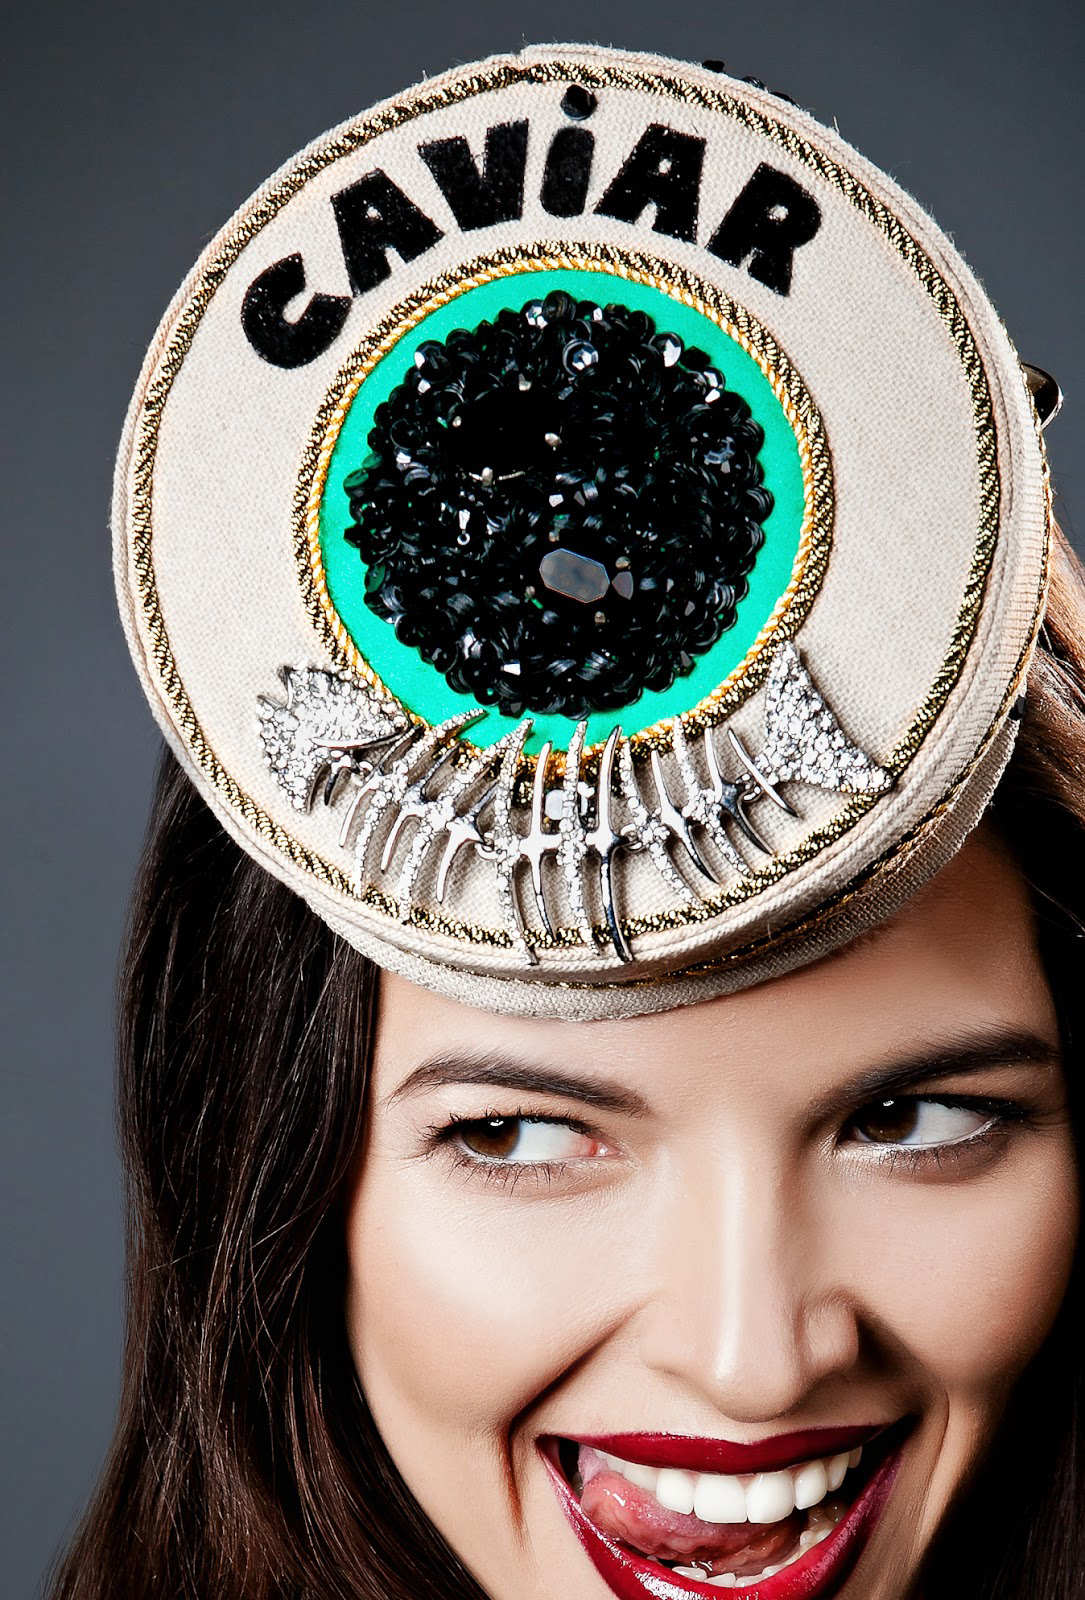 via fashioned by love | Anya Caliendo | Couture Millinery | Caviar